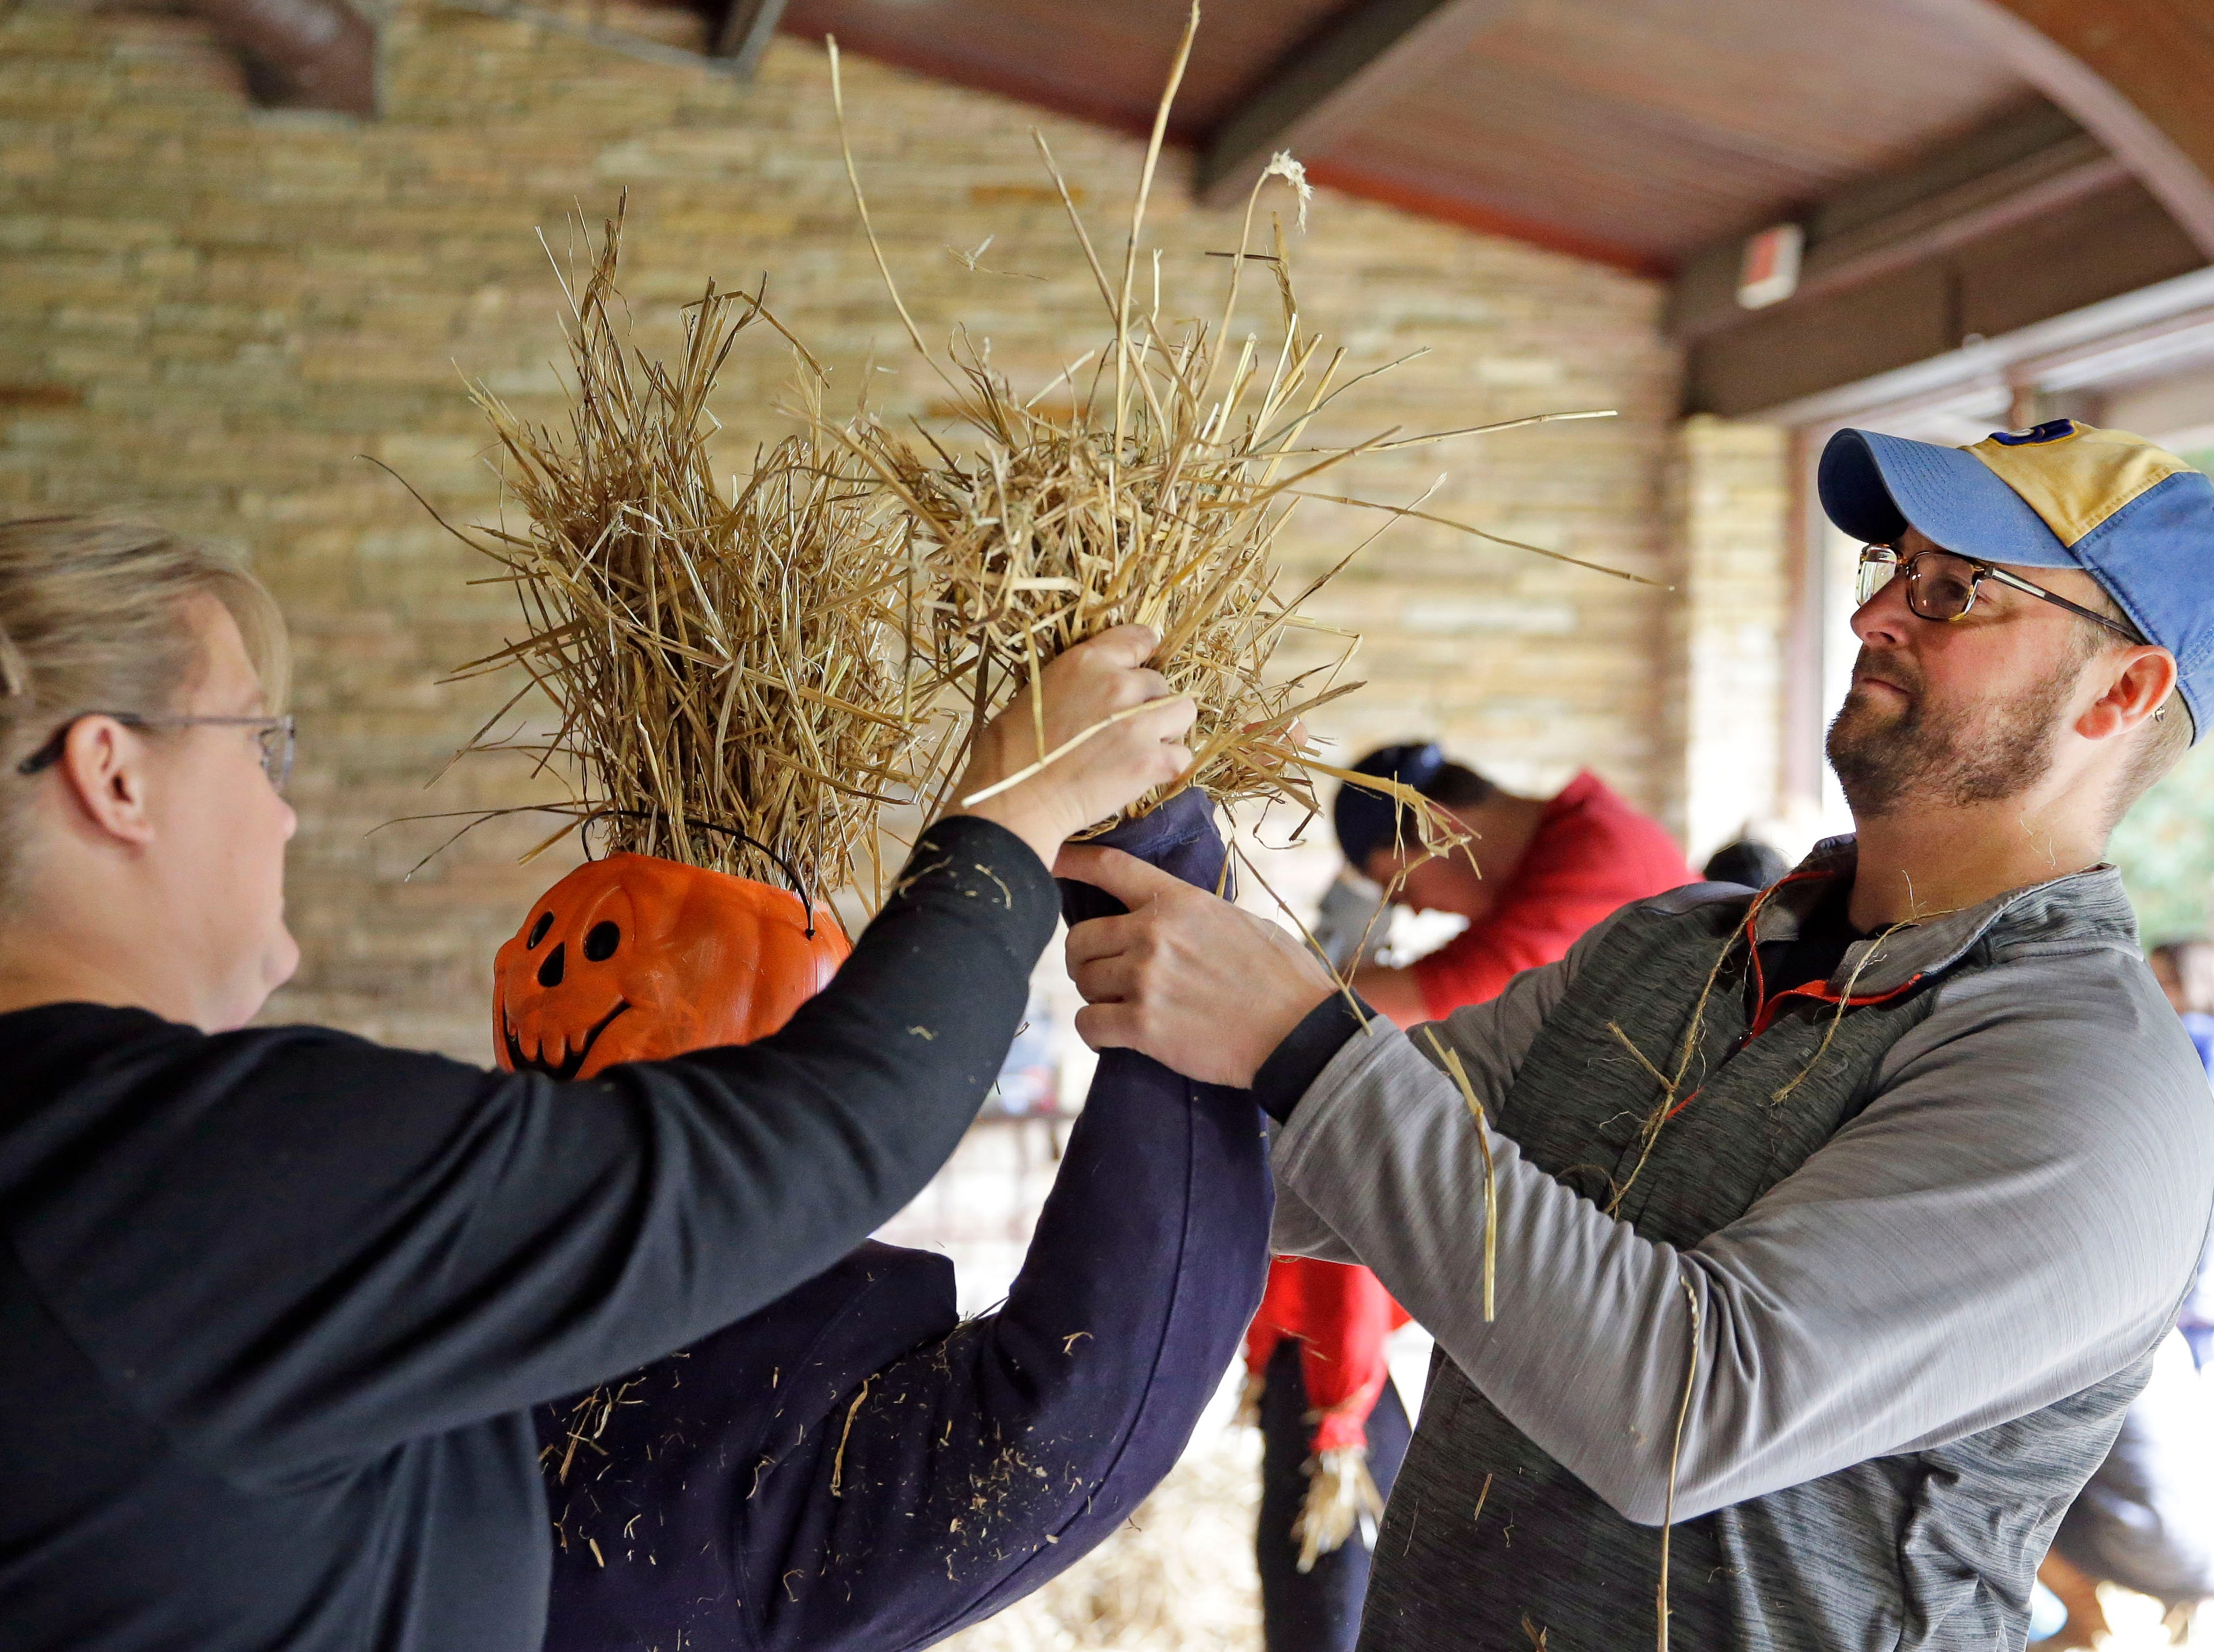 Val and Pete Splittgerber work on a scarecrow as the Neenah Parks and Recreation provided the frame and the straw for the annual Build-A-Scarecrow event Saturday, October 13, 2018, at Riverside Park in Neenah, Wis.